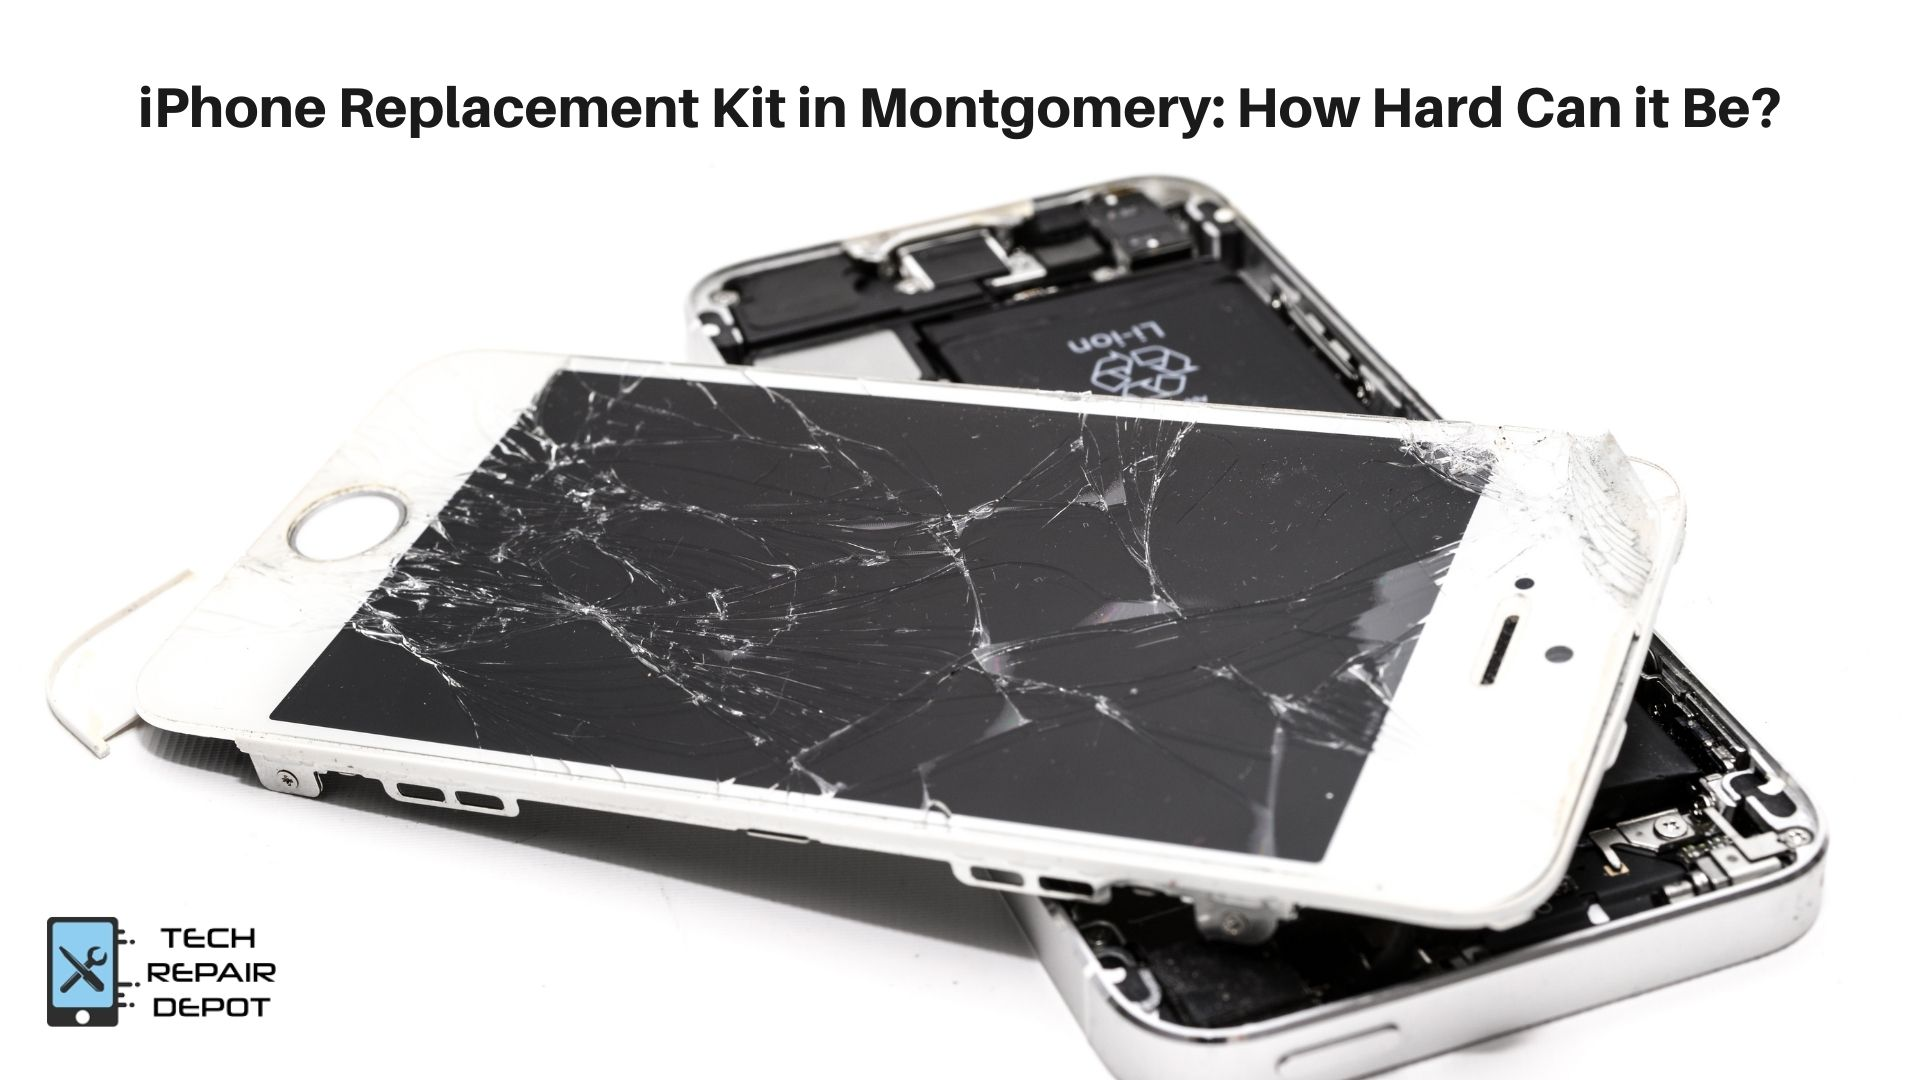 iPhone Replacement Kits in Montgomery